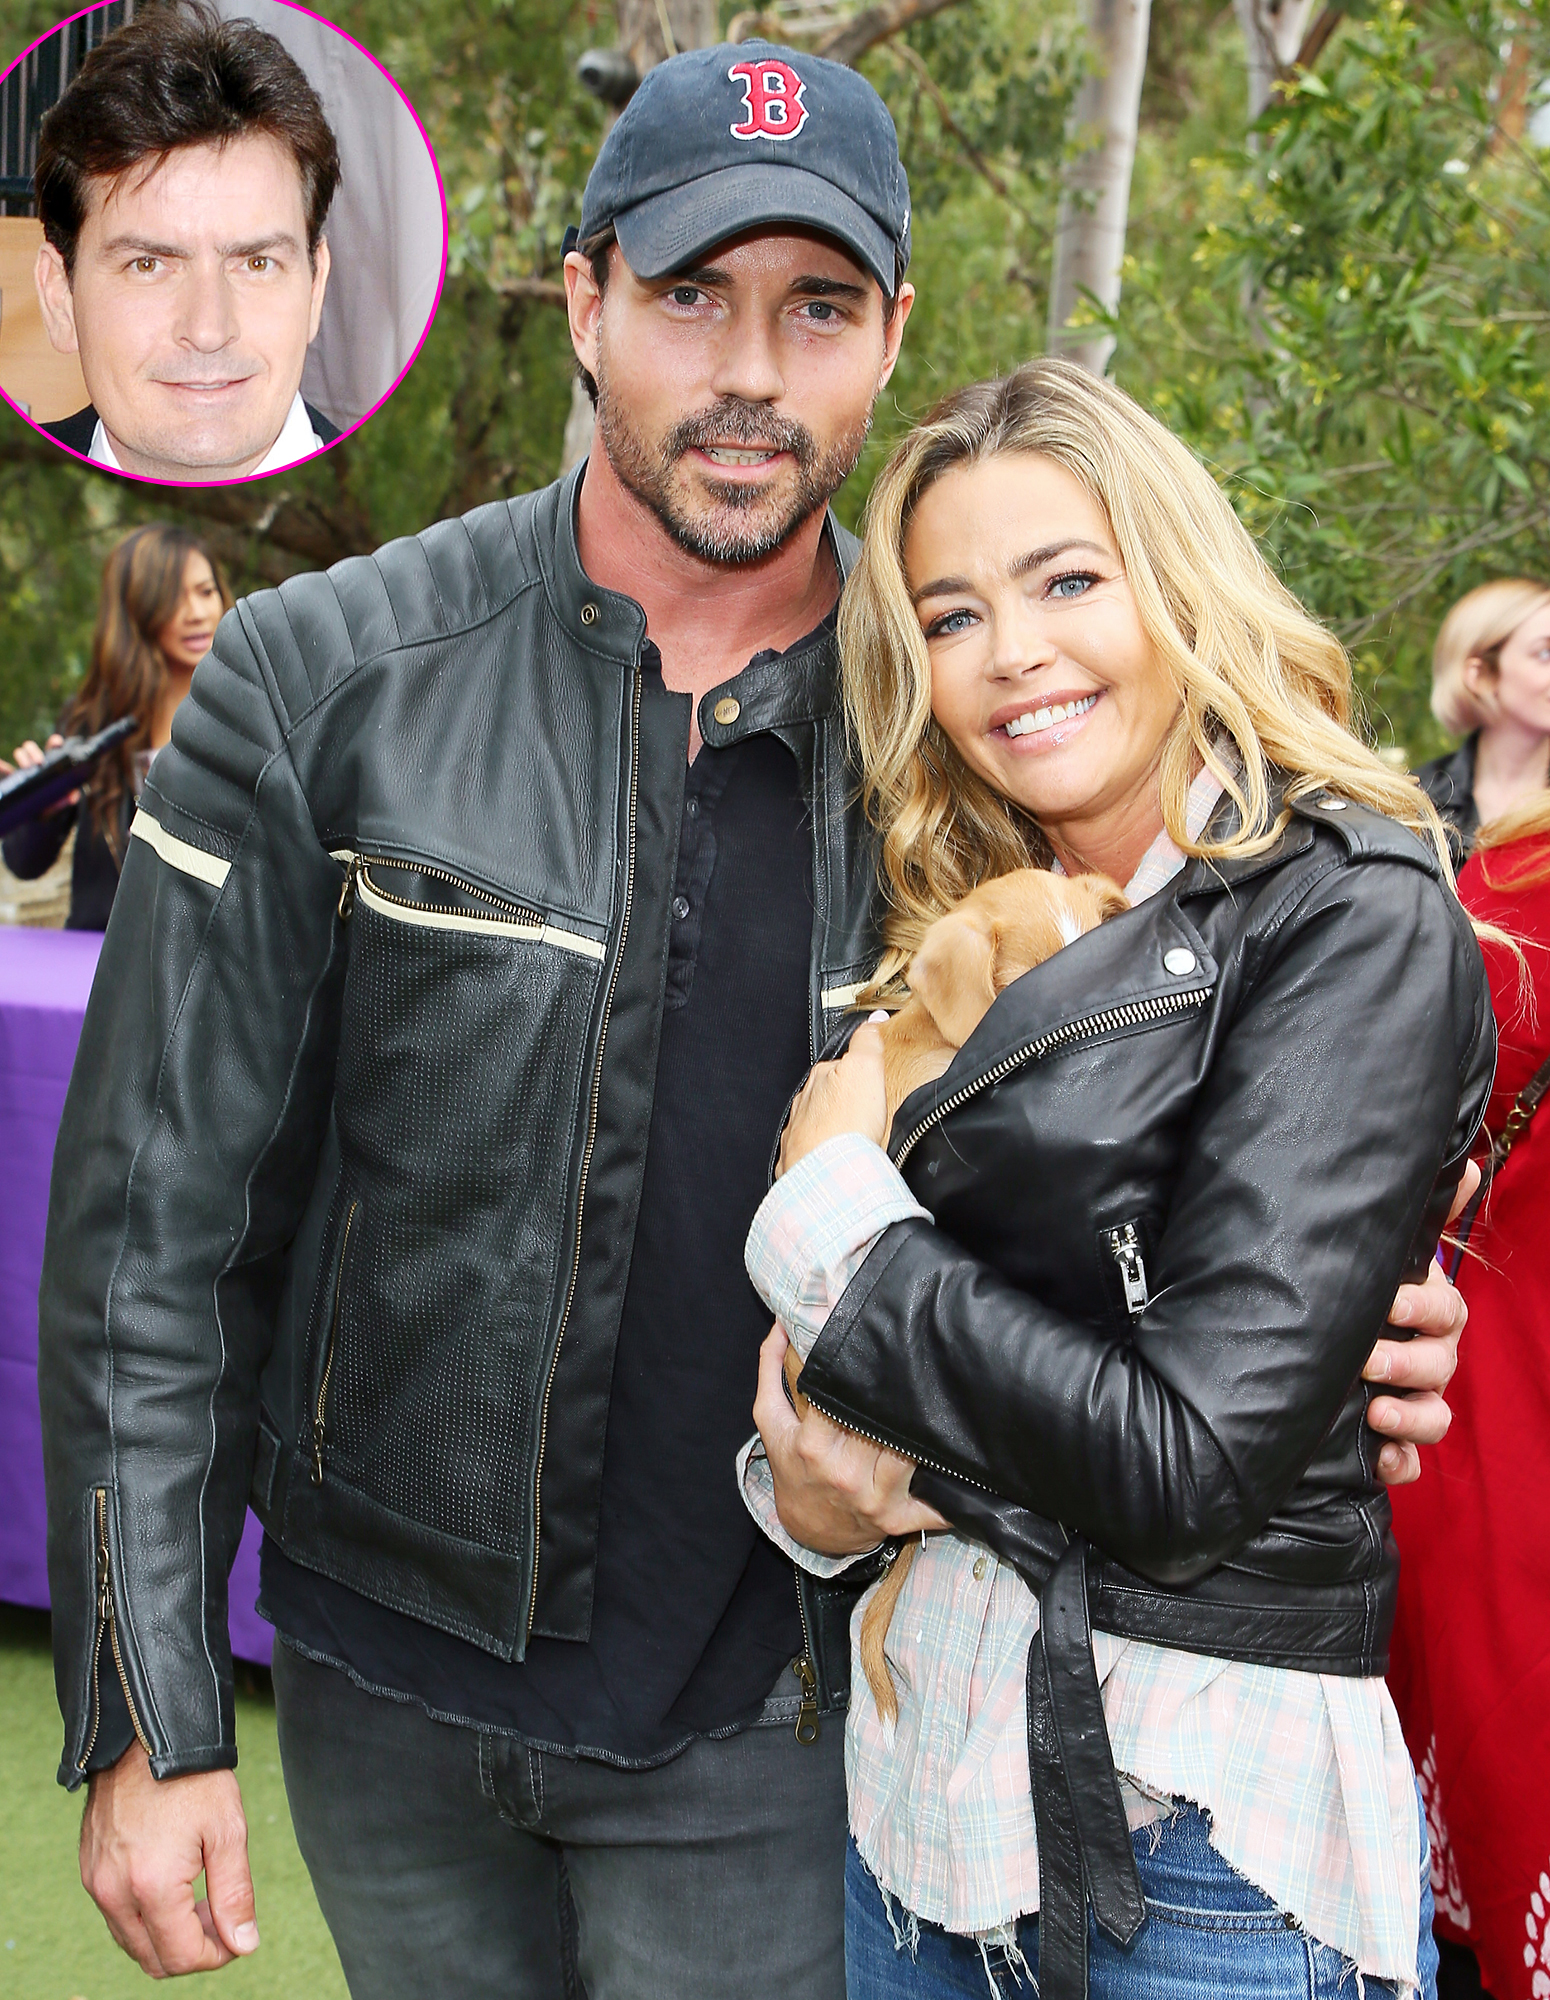 """Denise Richards Quotes About Husband Aaron Phypers - On the March 26 episode of RHOBH , Denise sounded off about her wedding day to Phypers, noting that she didn't care who her ex-husband, Charlie Sheen , brought to their nuptials. """" Even if he did bring a prostitute as his date, I wouldn't care. It's just, it is what it is,"""" she said."""